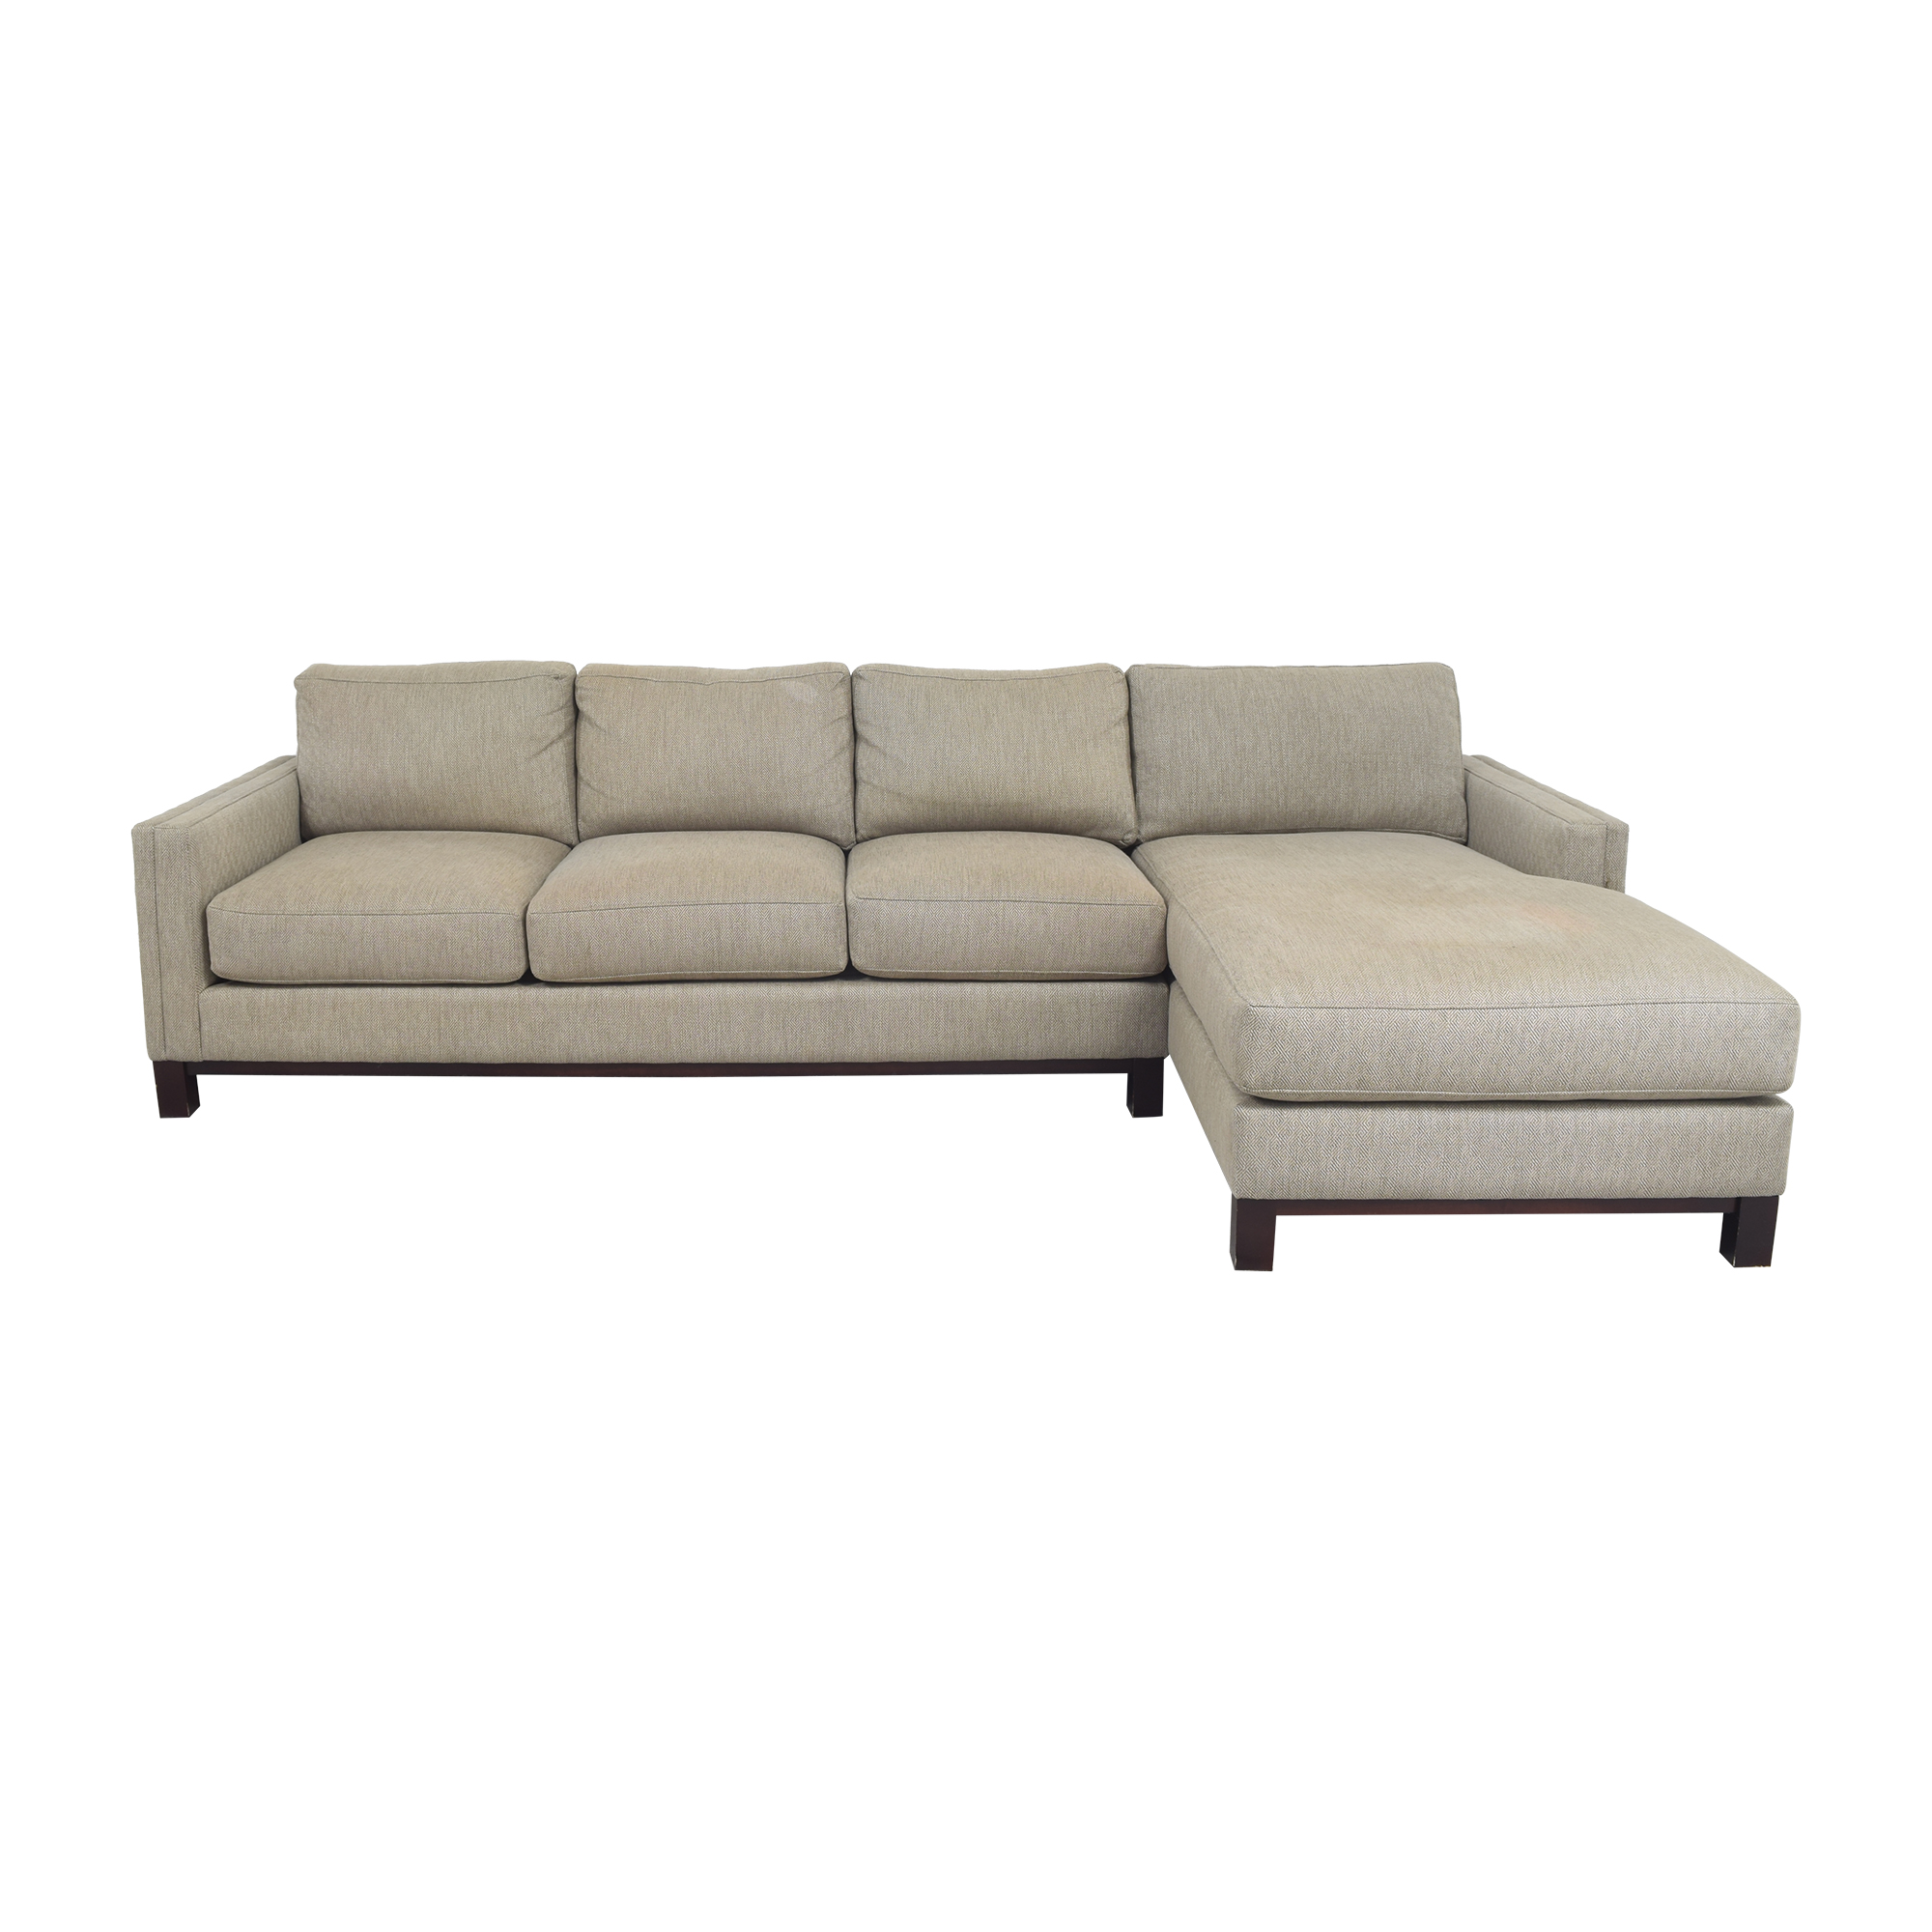 buy Safavieh Sectional Sofa with Chaise Safavieh Sofas